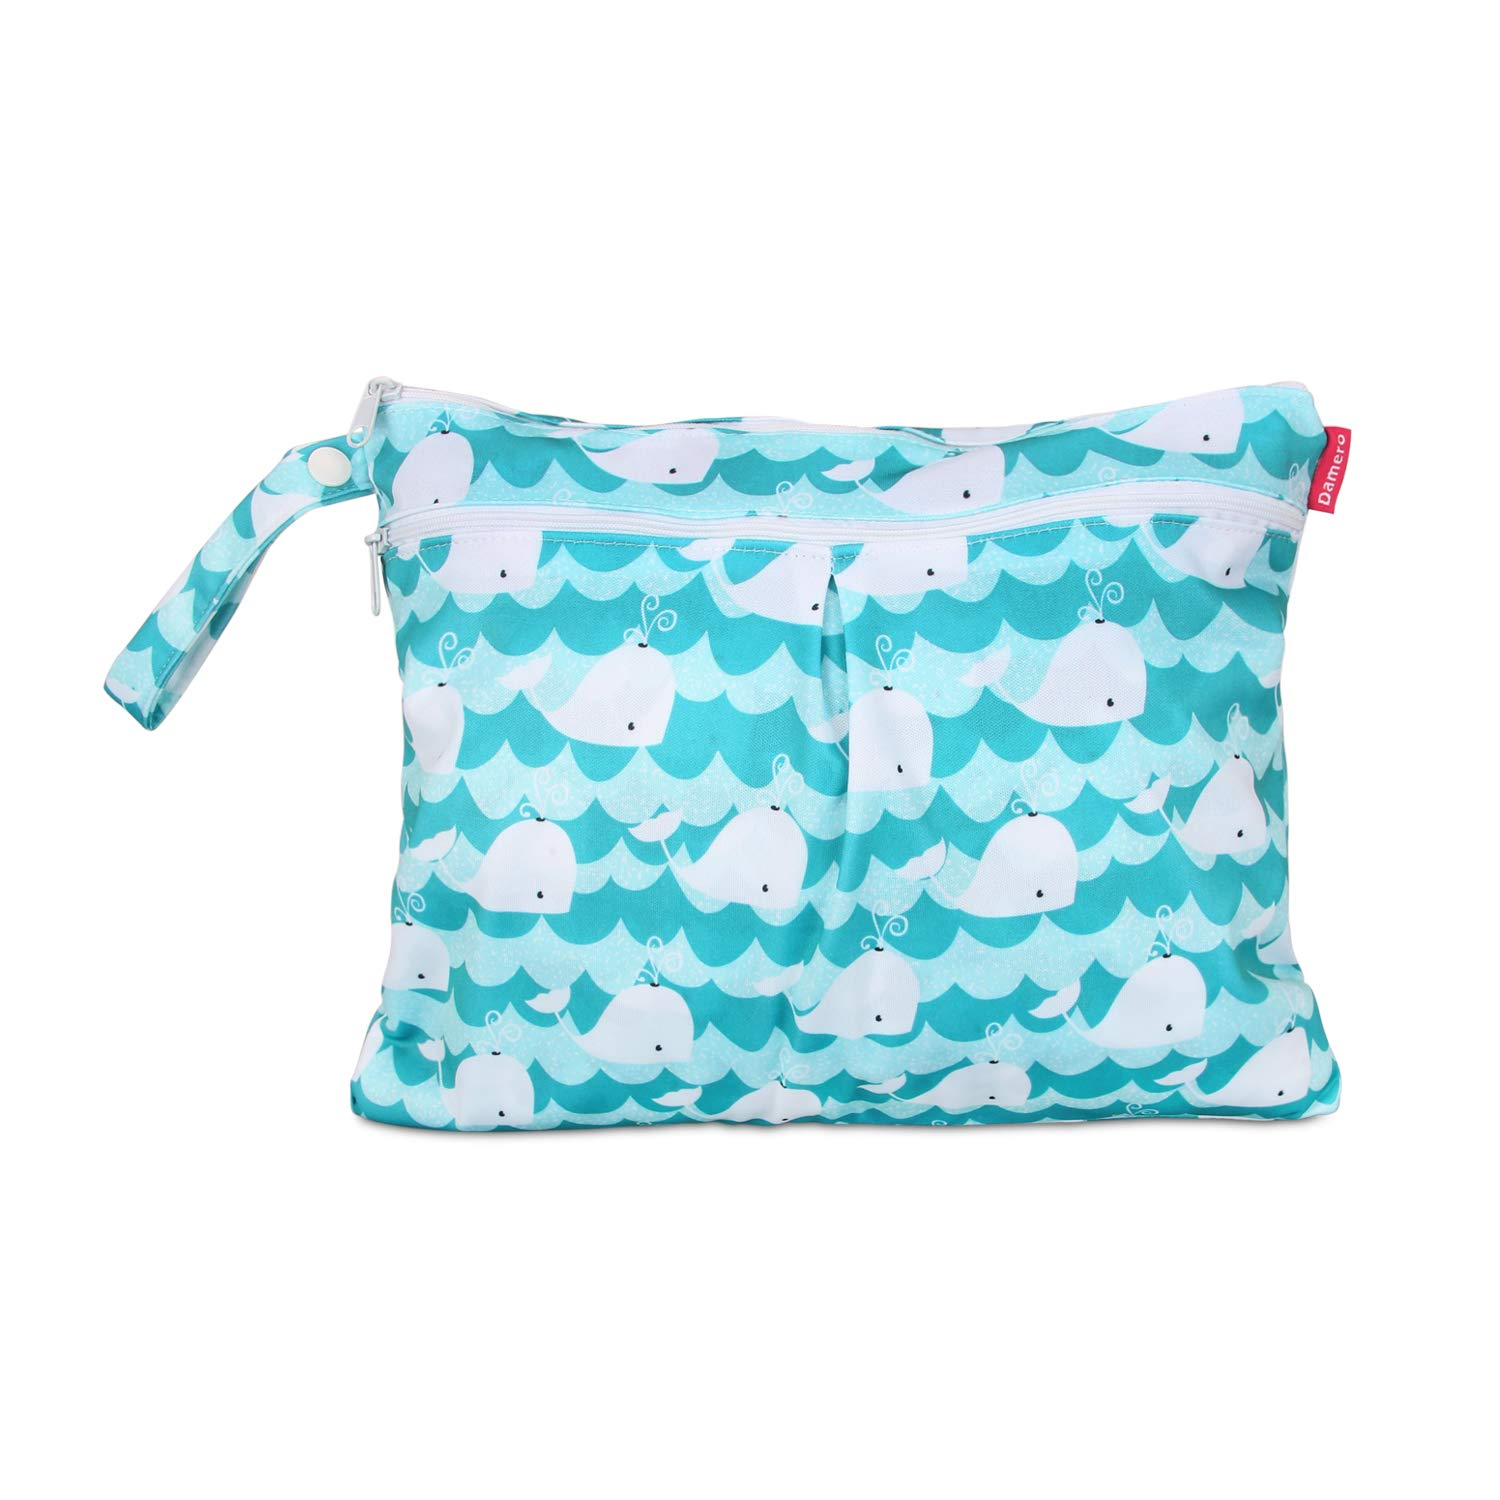 Damero Cloth Diaper Wet Dry Bag with Handle for Swimsuit, Pumping Parts, Wet Clothes and More, Ideal for Travel, Exercise, Daycare, Swimming, Reusable and Water-Resistant (Small,Cute Whale)